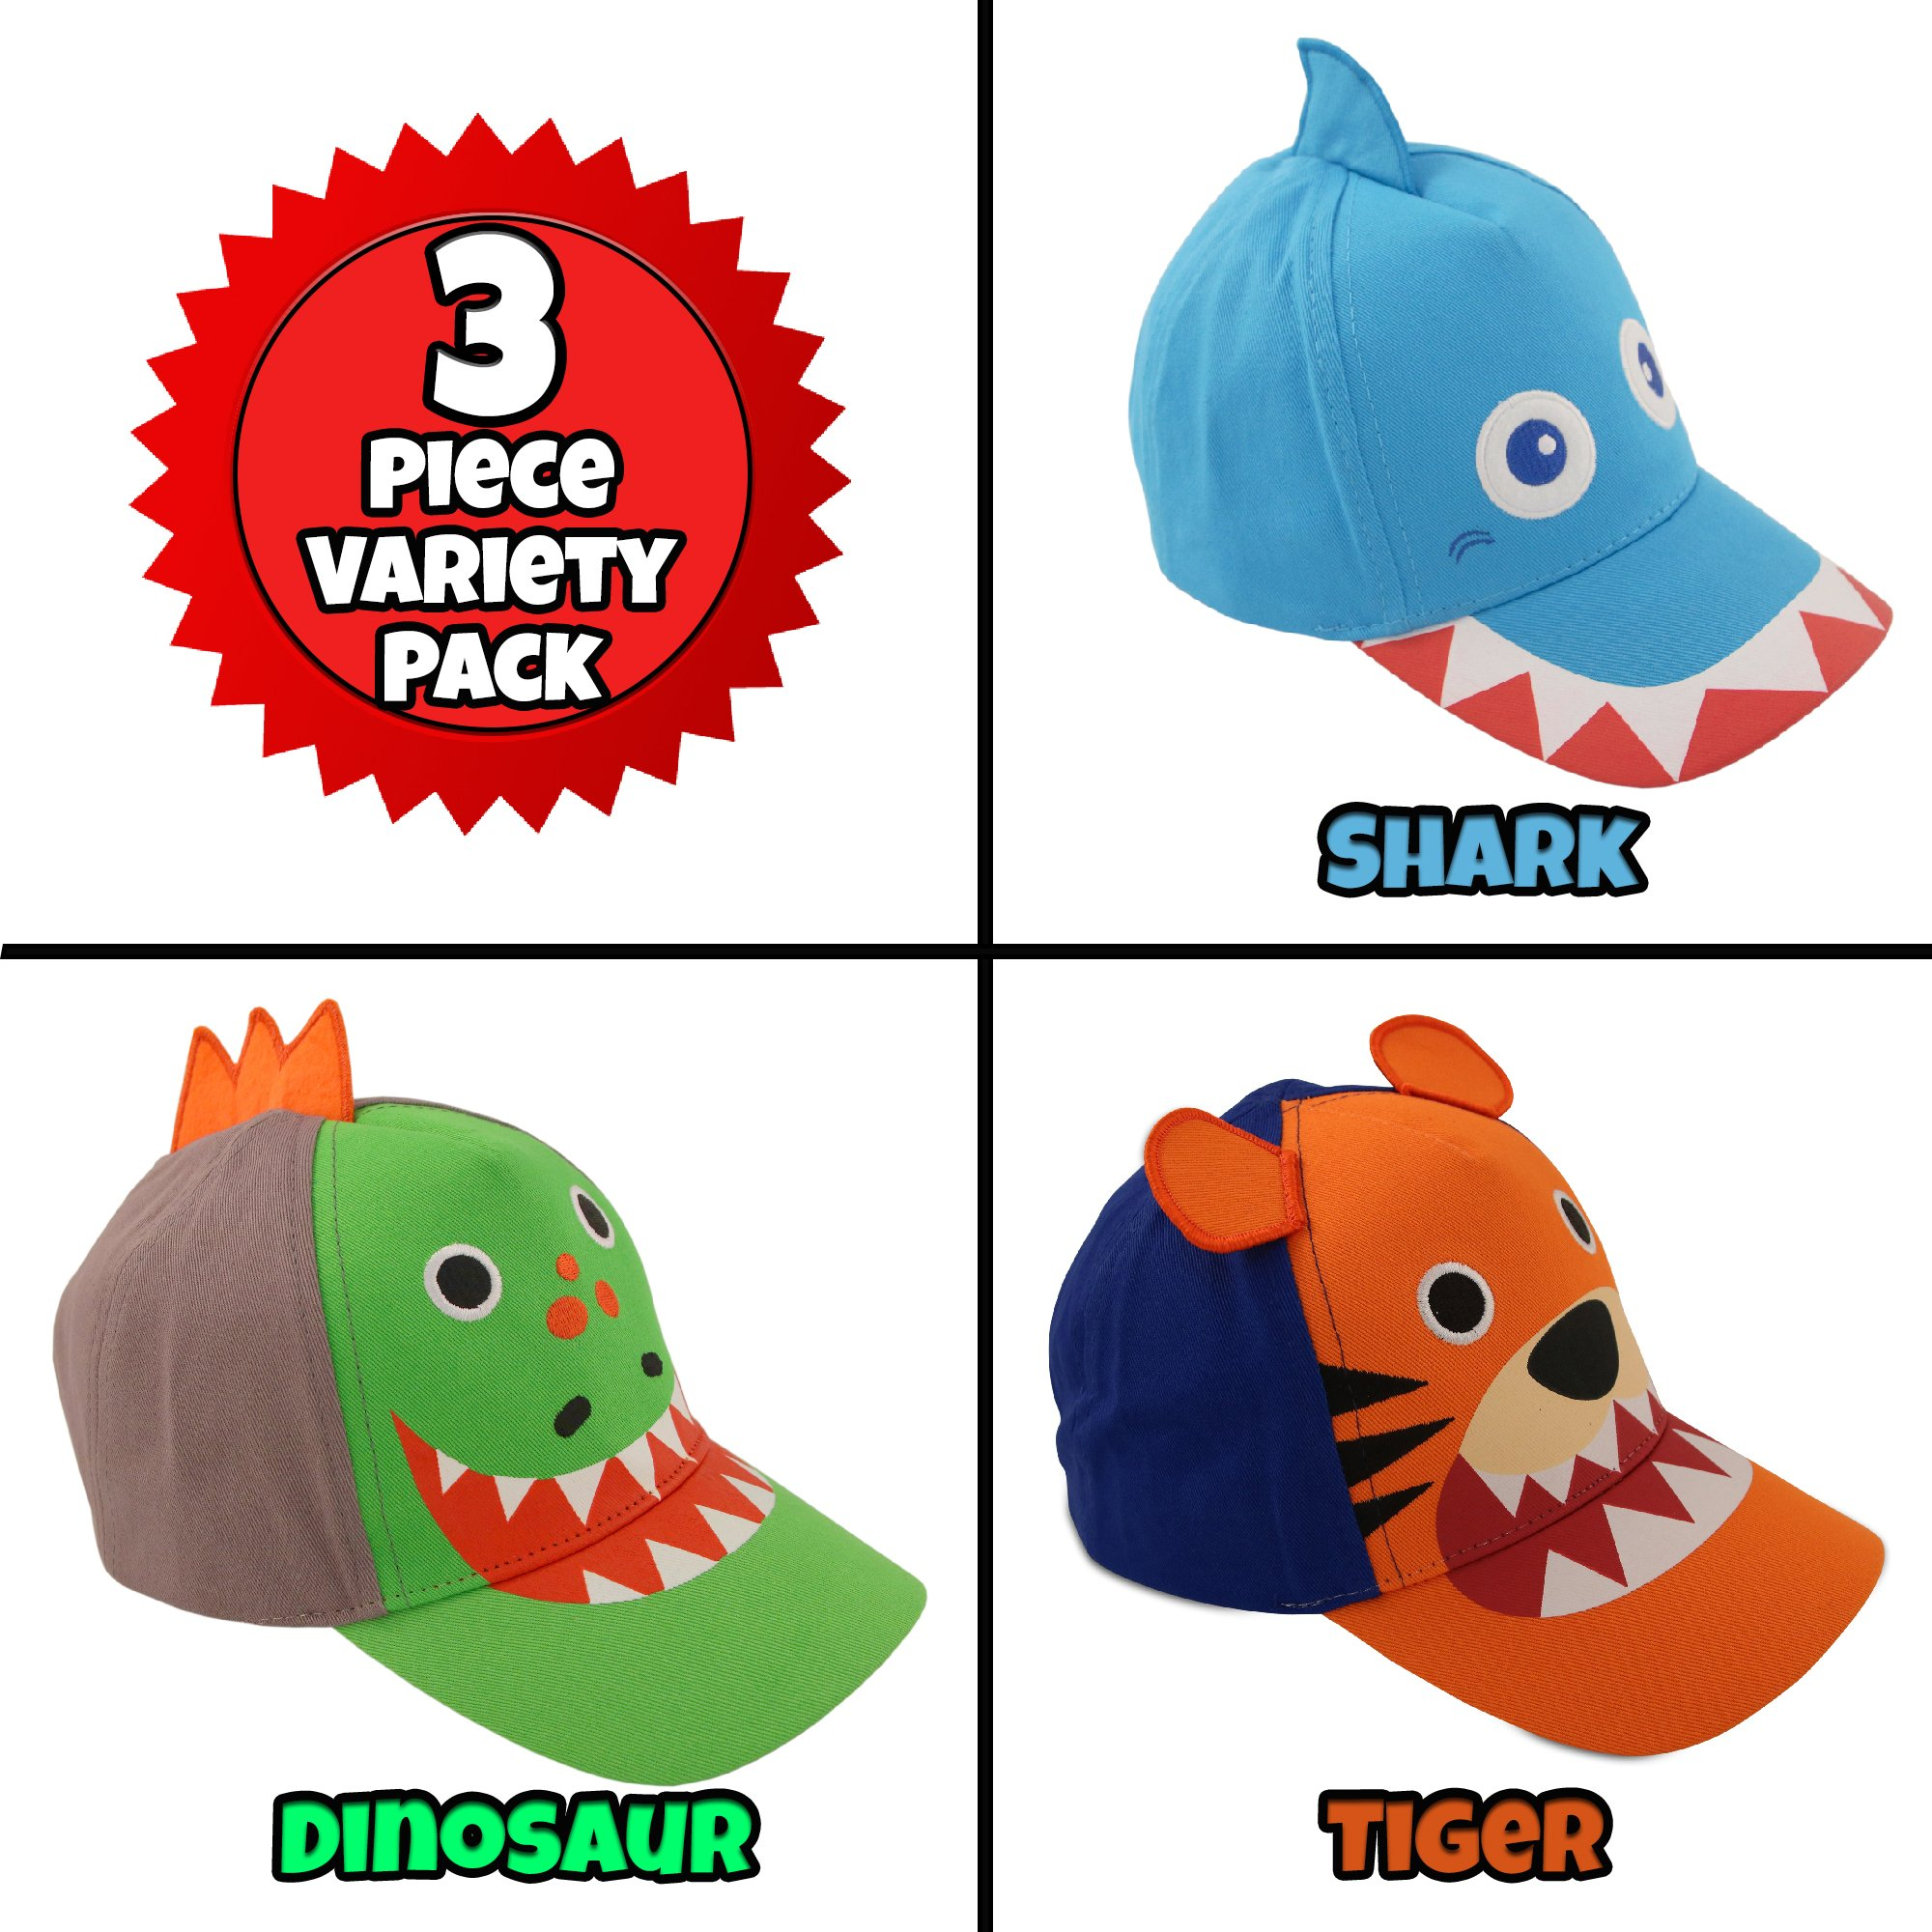 ABG Accessories Toddler Boys Cotton Baseball Cap with Assorted Animal Critter Designs, Age 2-4 (3 Piece Variety Design Pack) by ABG Accessories (Image #5)